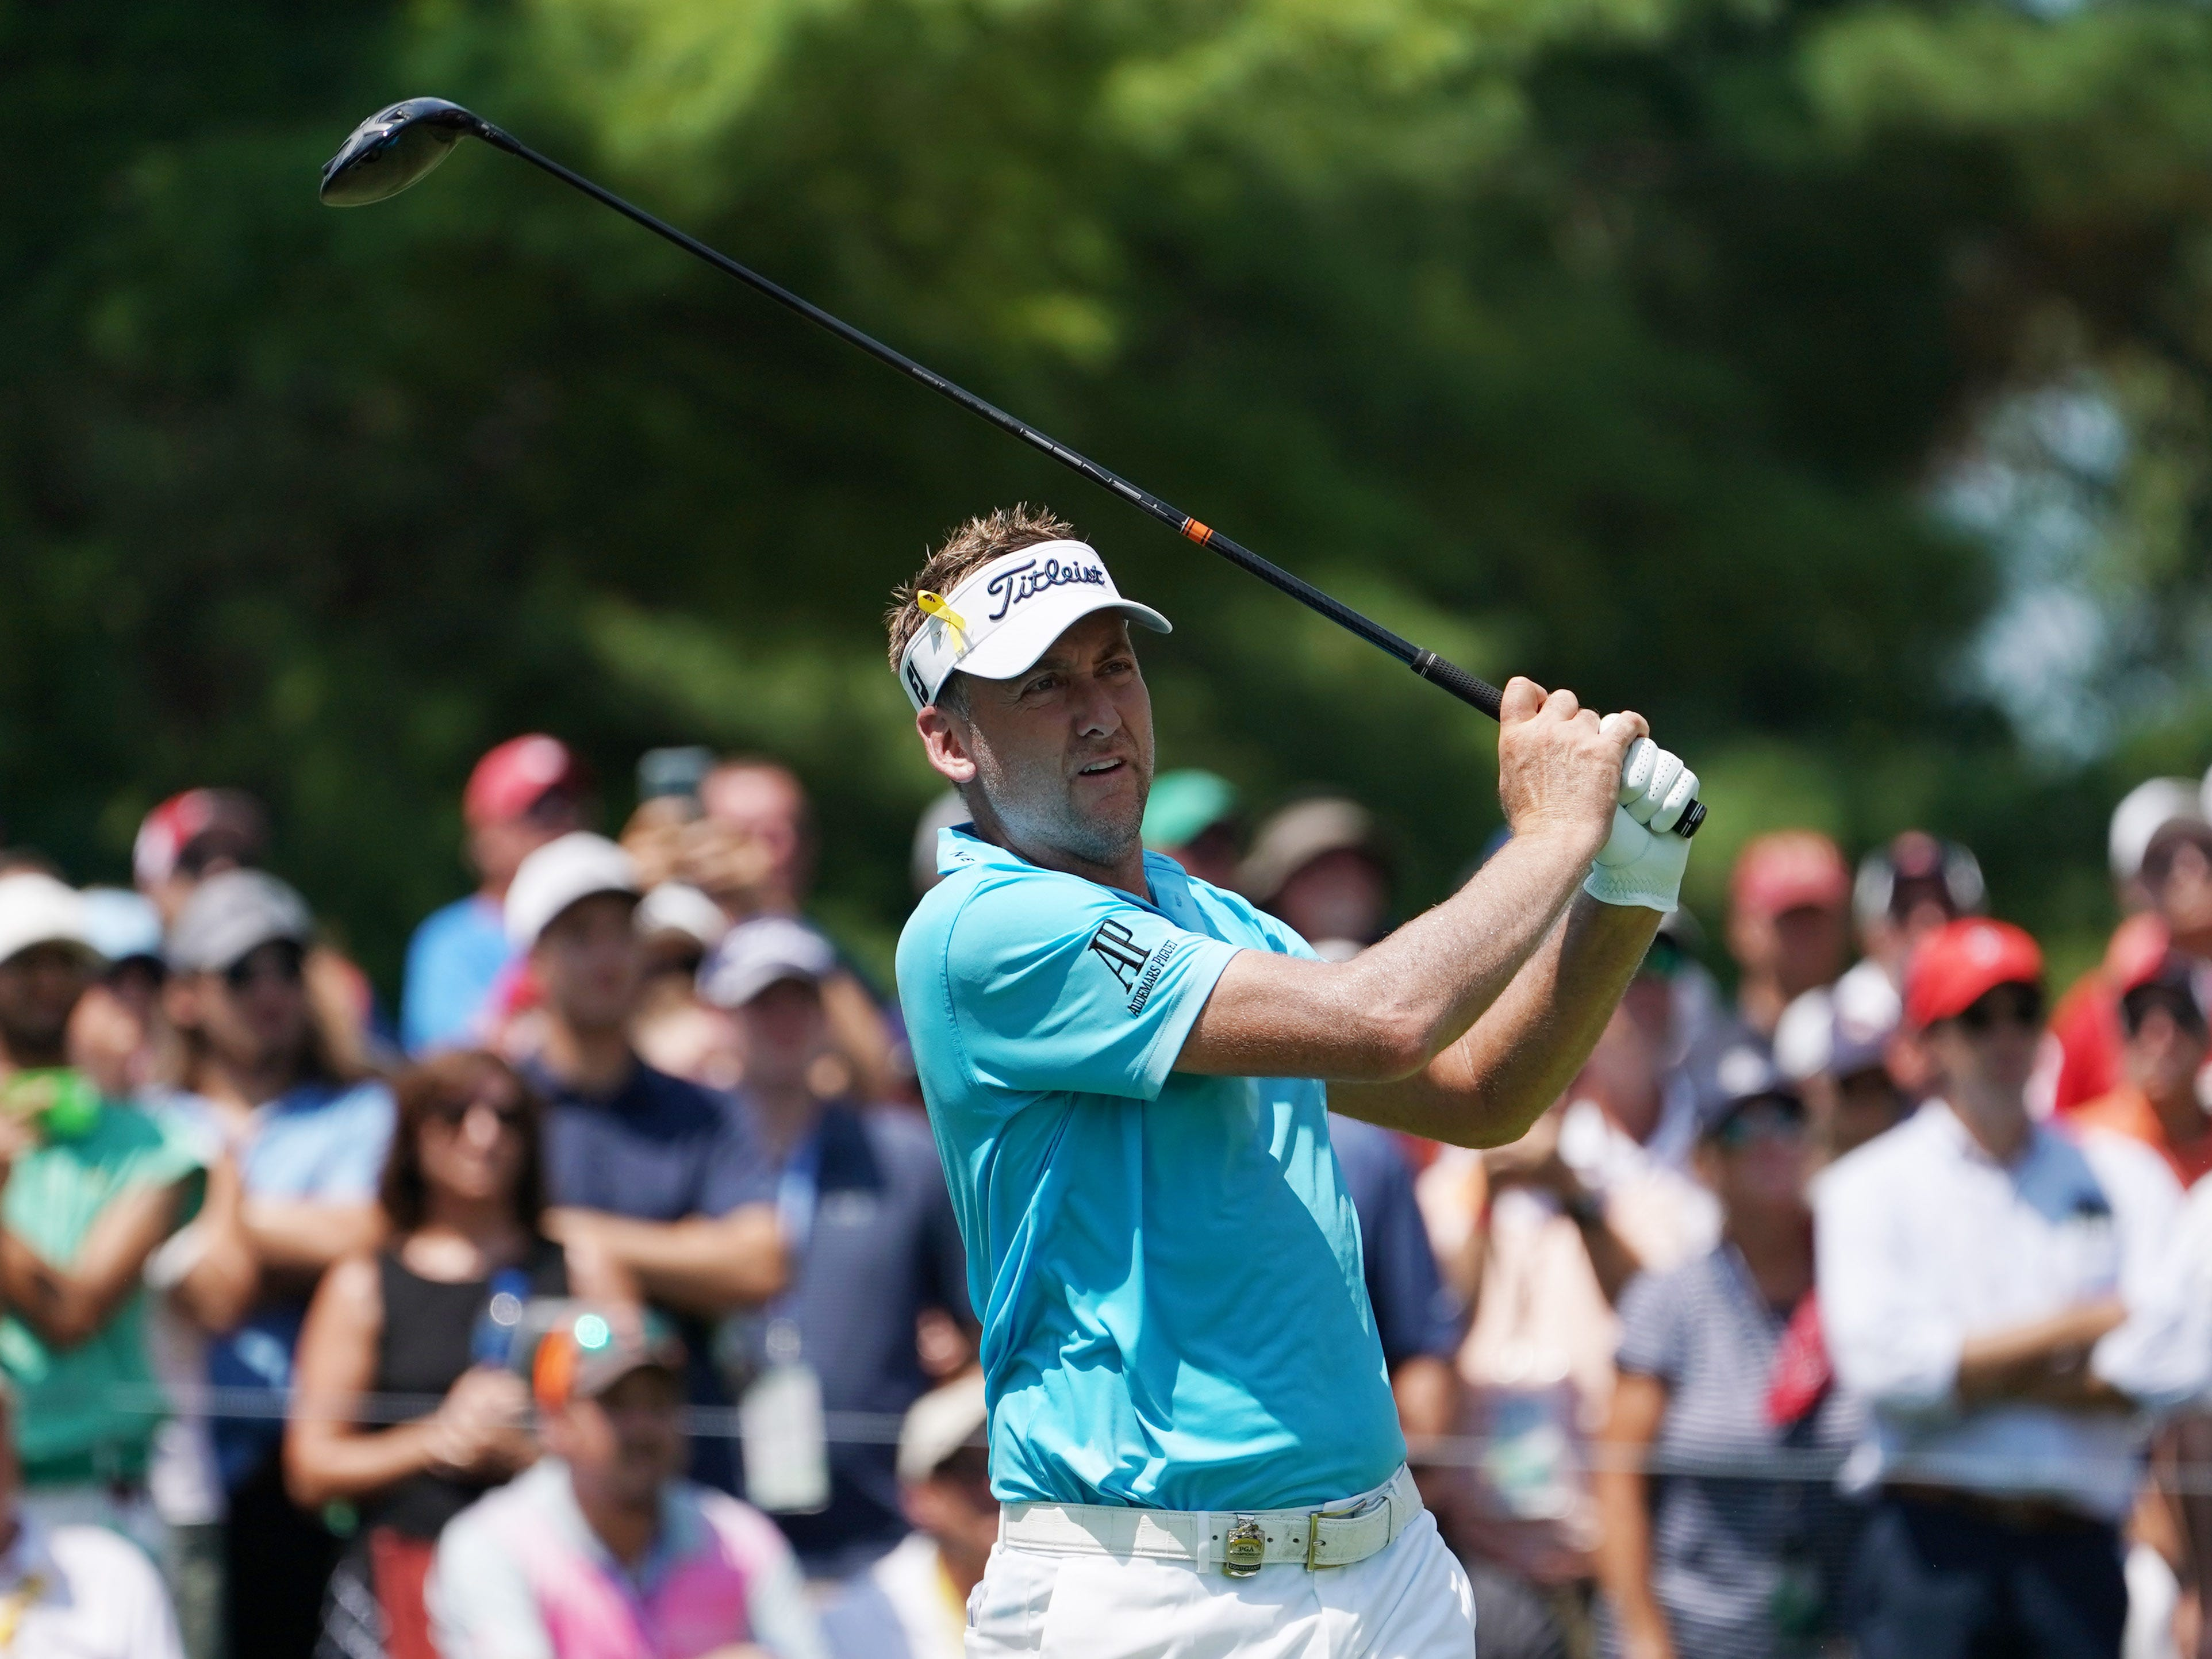 Ian Poulter hits his tee shot on the 4th hole during the second round.